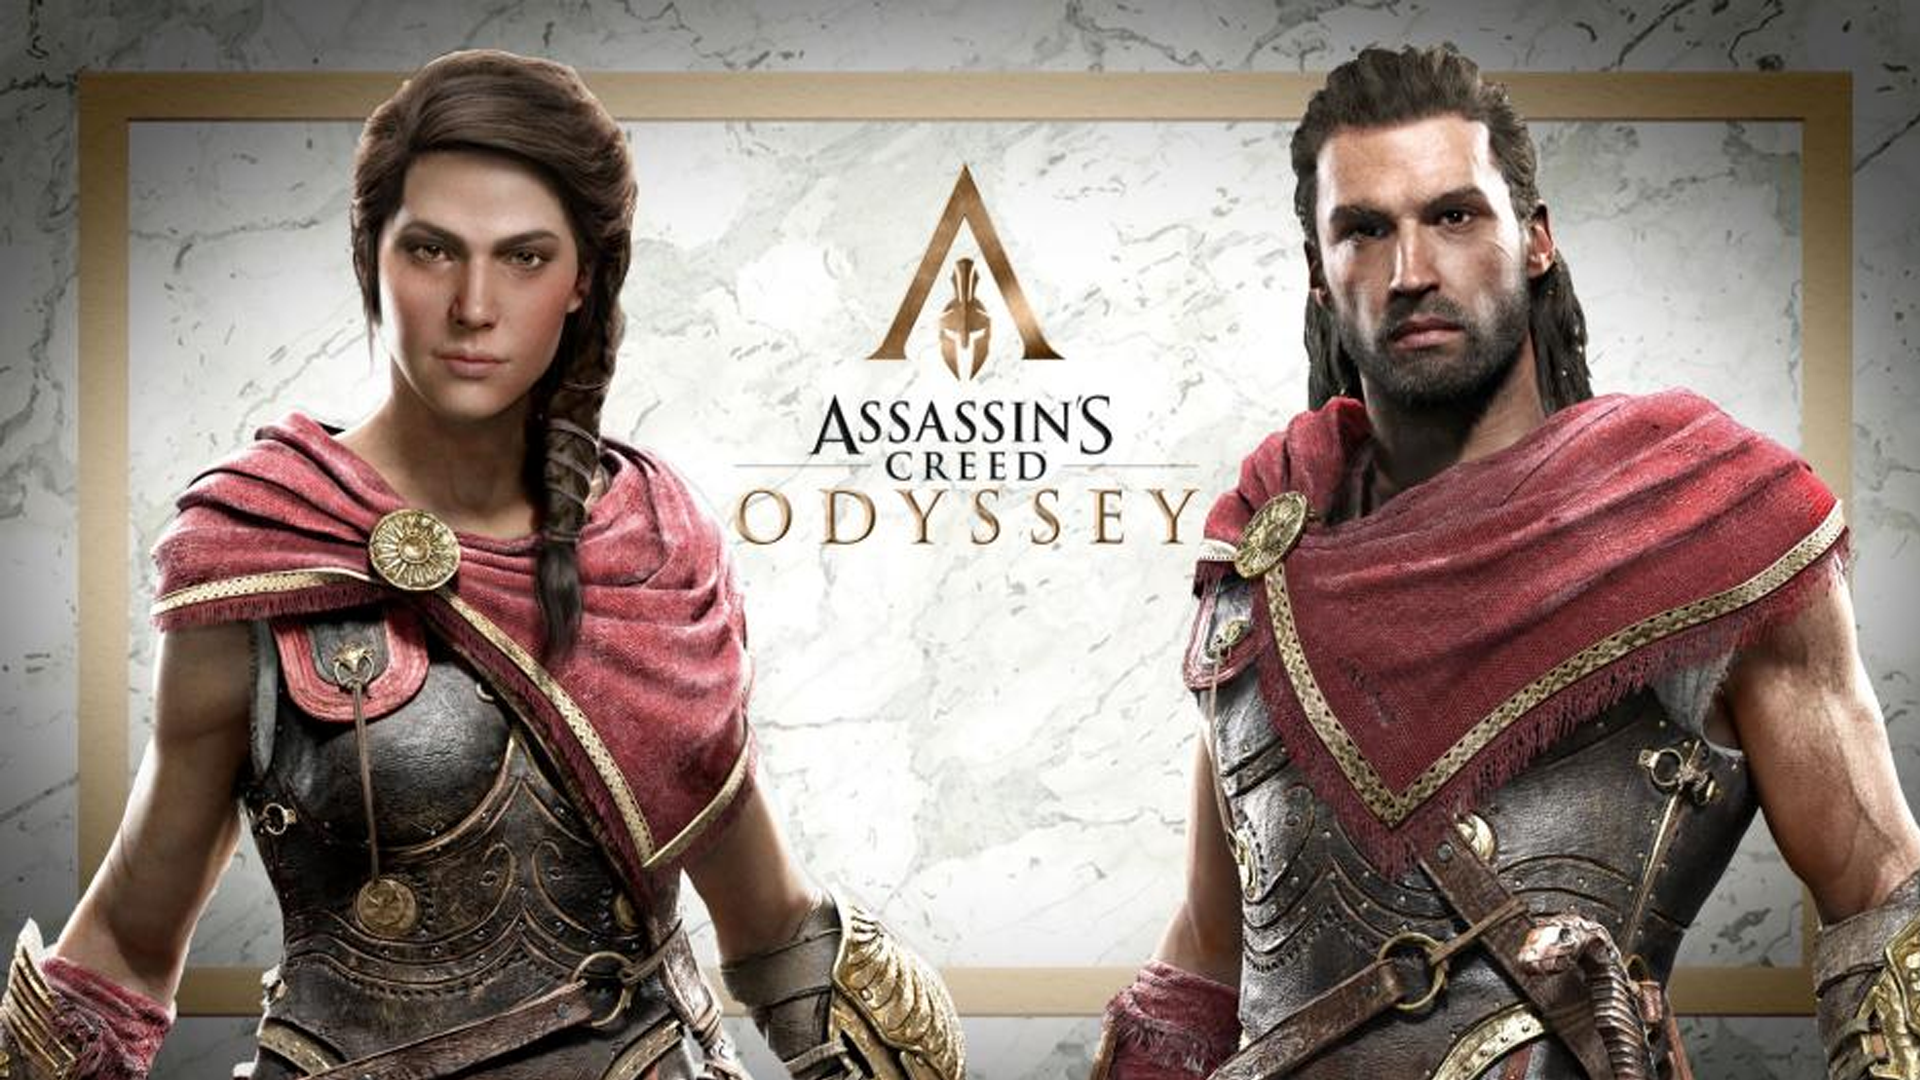 Assassins Creed Odyssey April Update Brings New Lost Tale